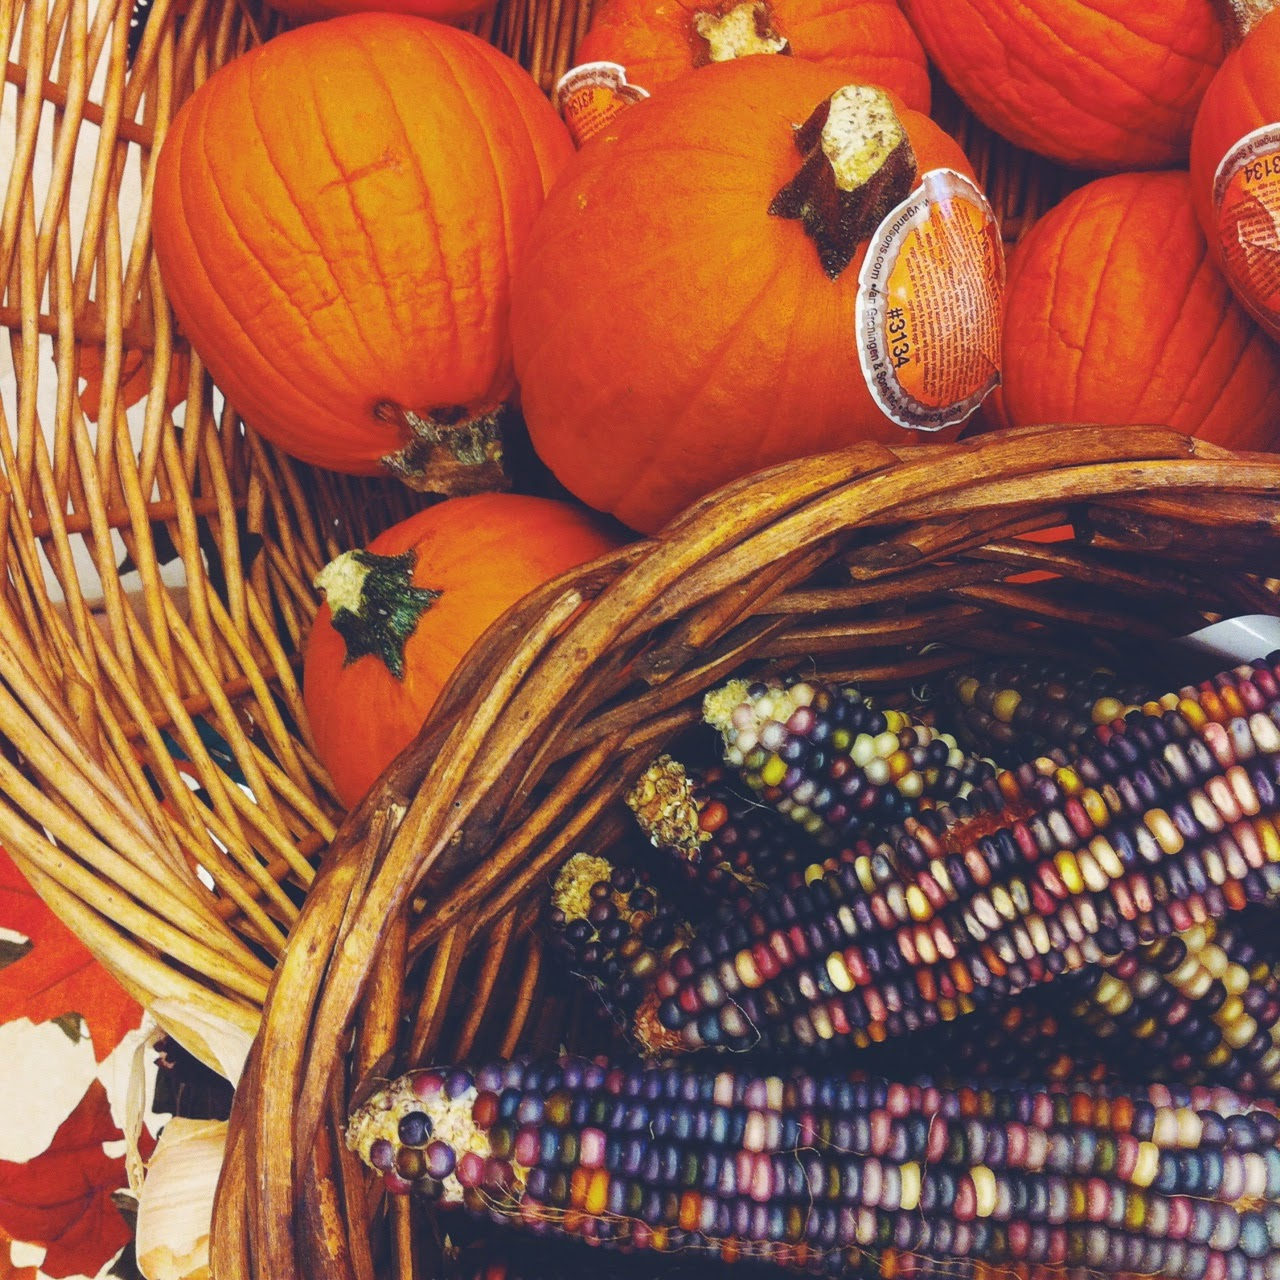 pumpkin season, nature-inspired decoration, fall inspiration, tlv birdie blog, ecofriendly, slow living lifestyle blog, country living